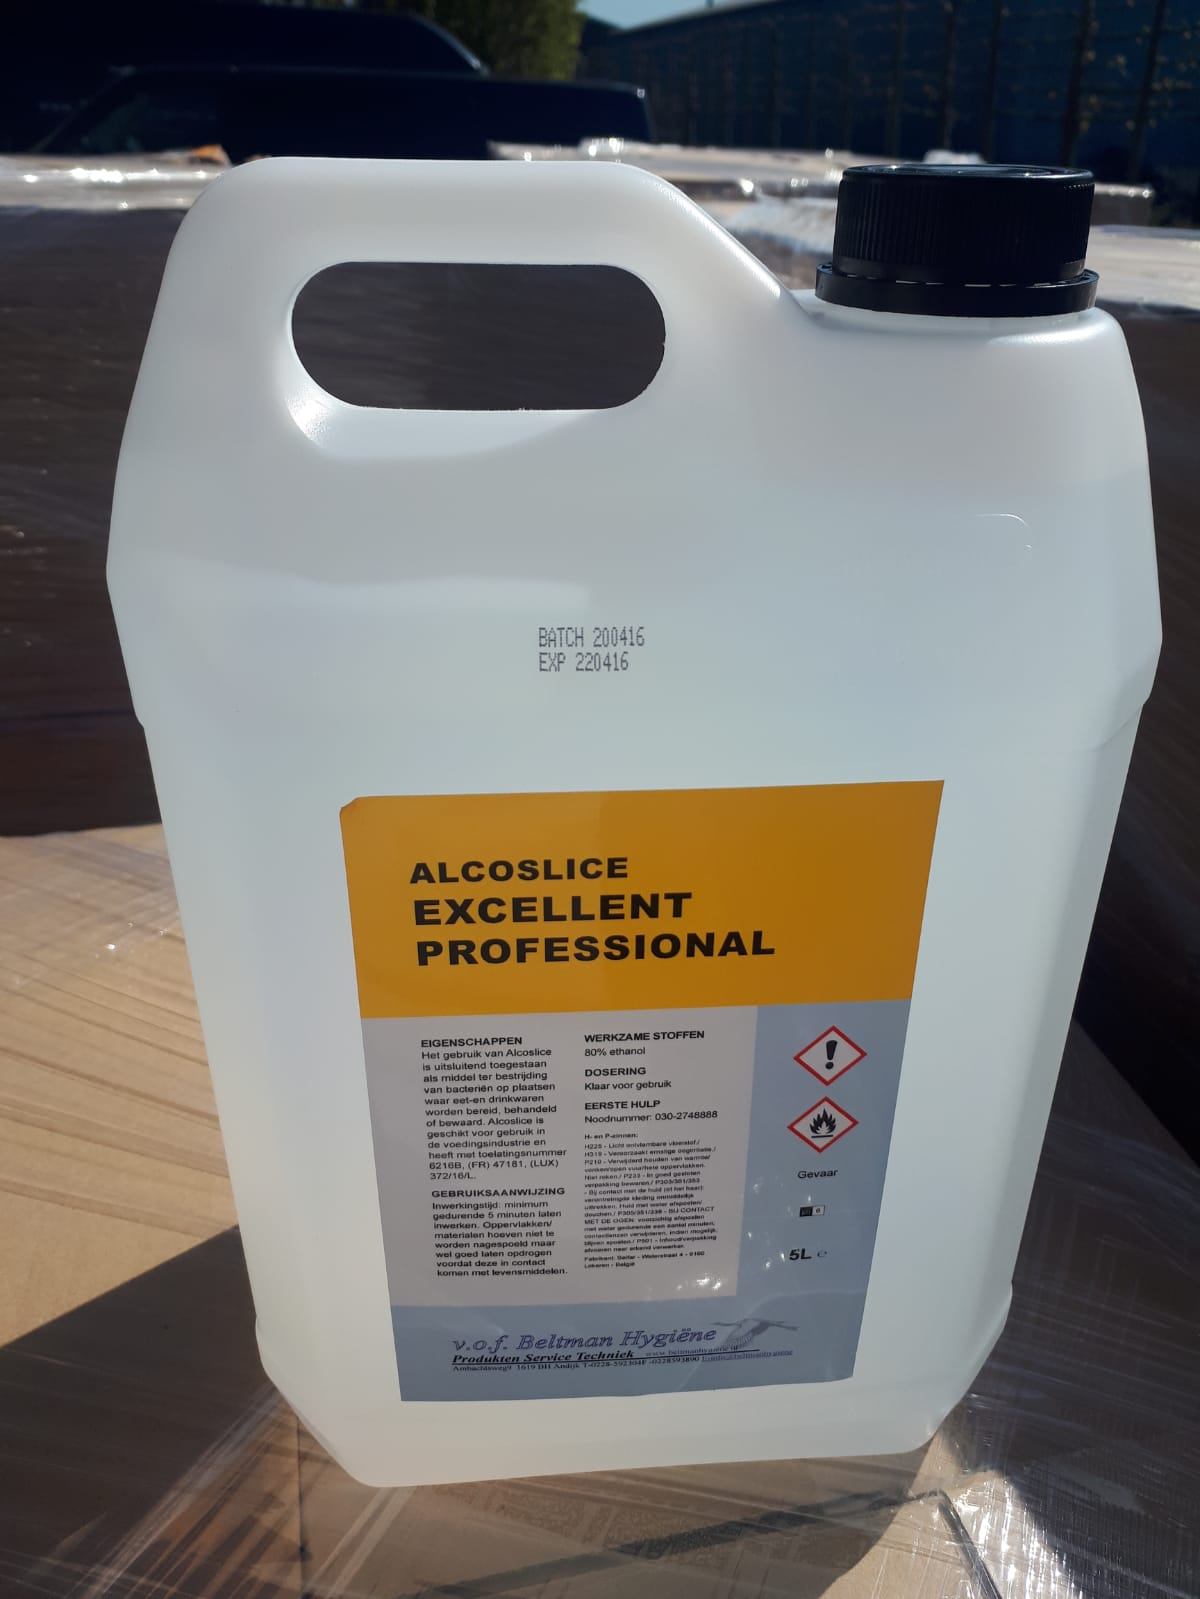 Excellent Alcolice professional: 80% ethanol Image